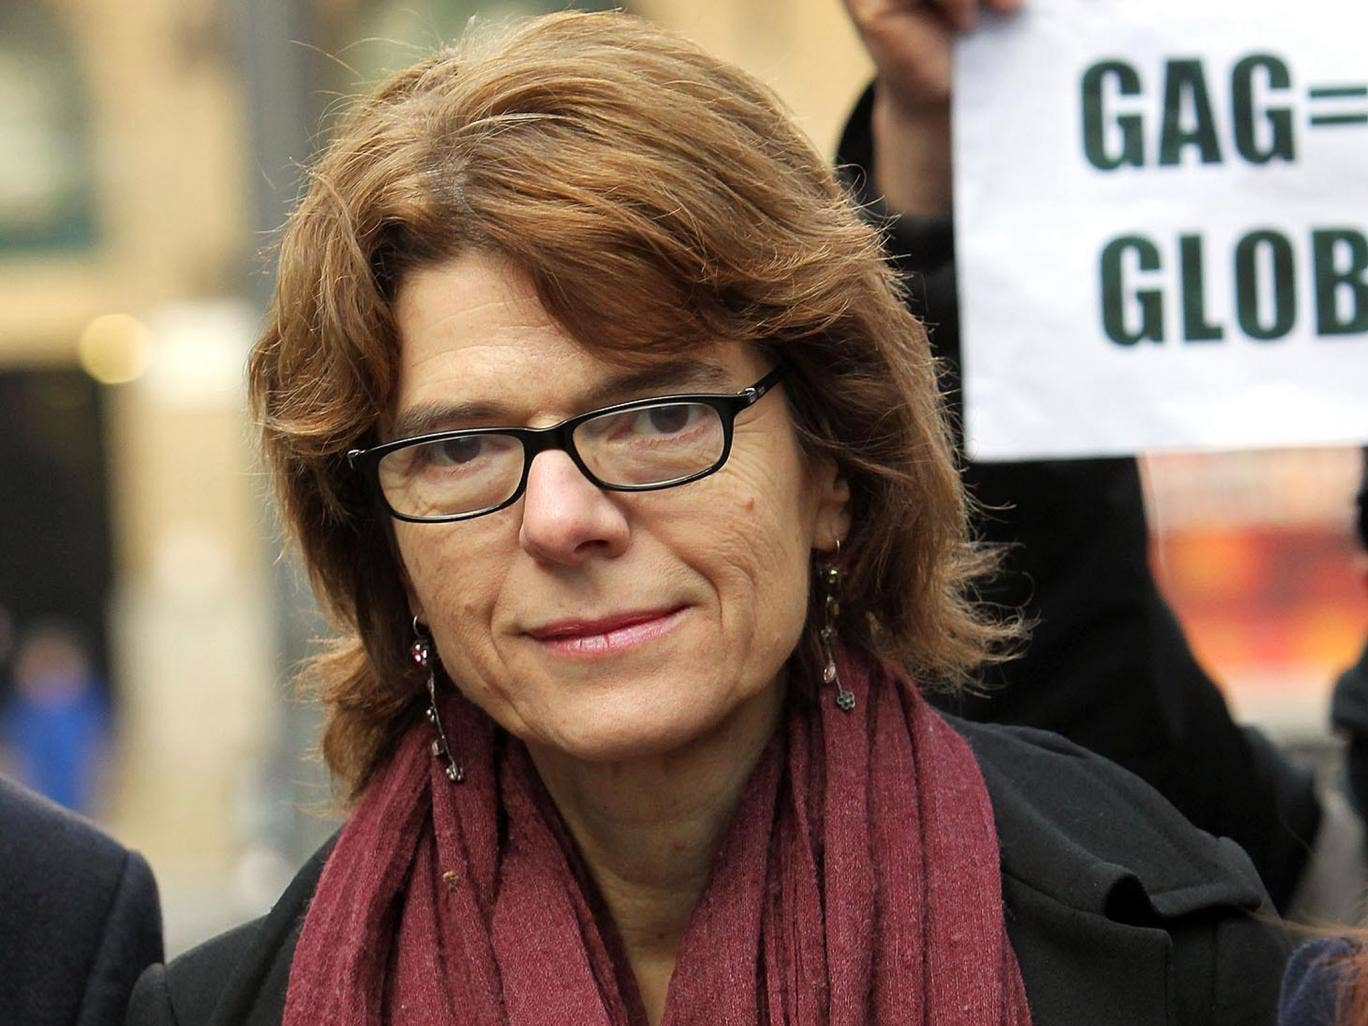 Vicky Pryce arrives at Southwark Crown Court today